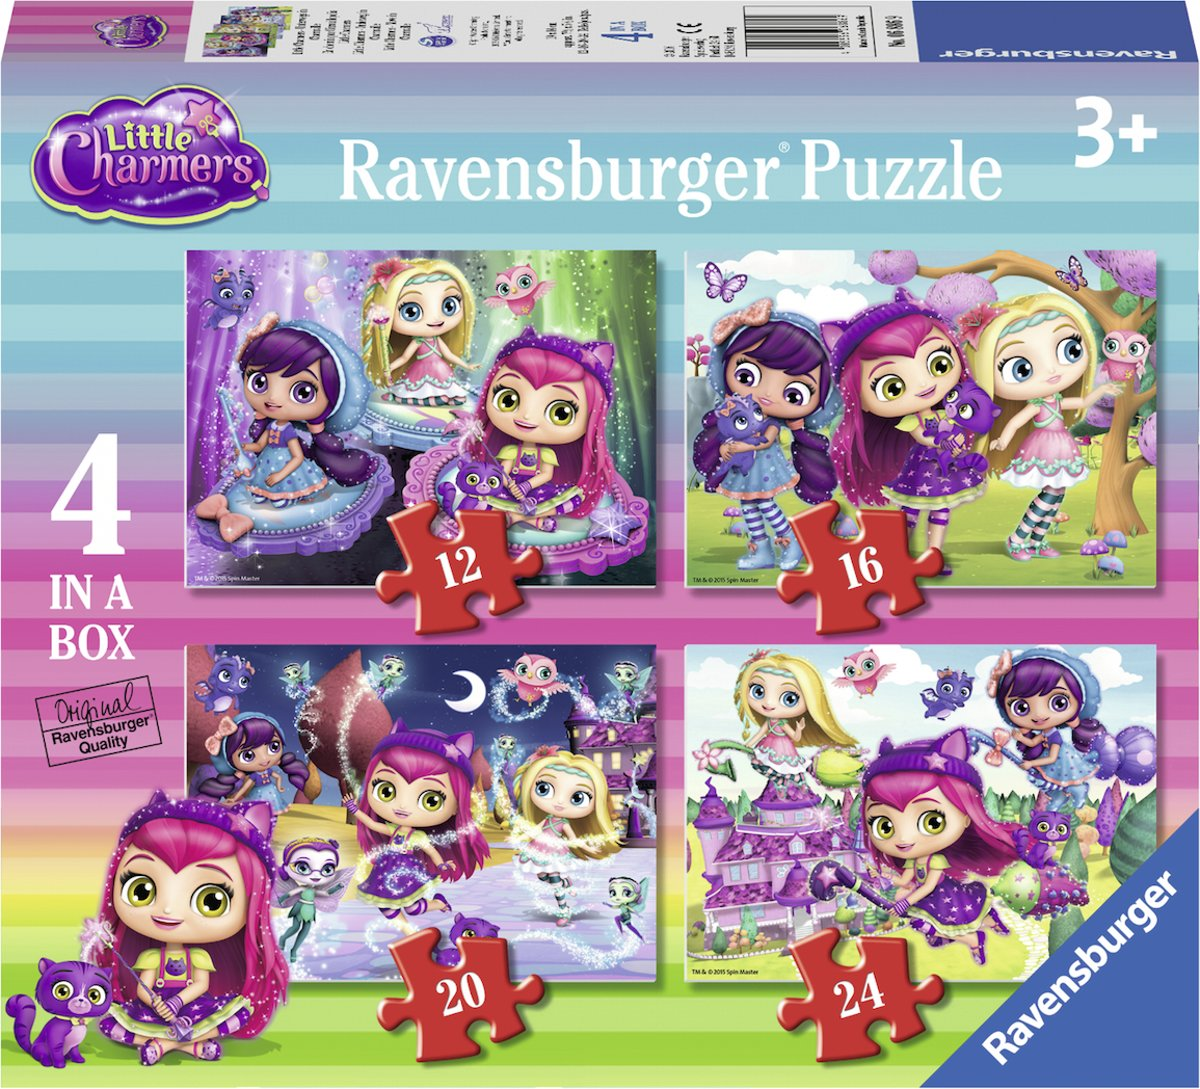 Ravensburger Little Charmers 4in1box puzzel - 12+16+20+24 stukjes - kinderpuzzel